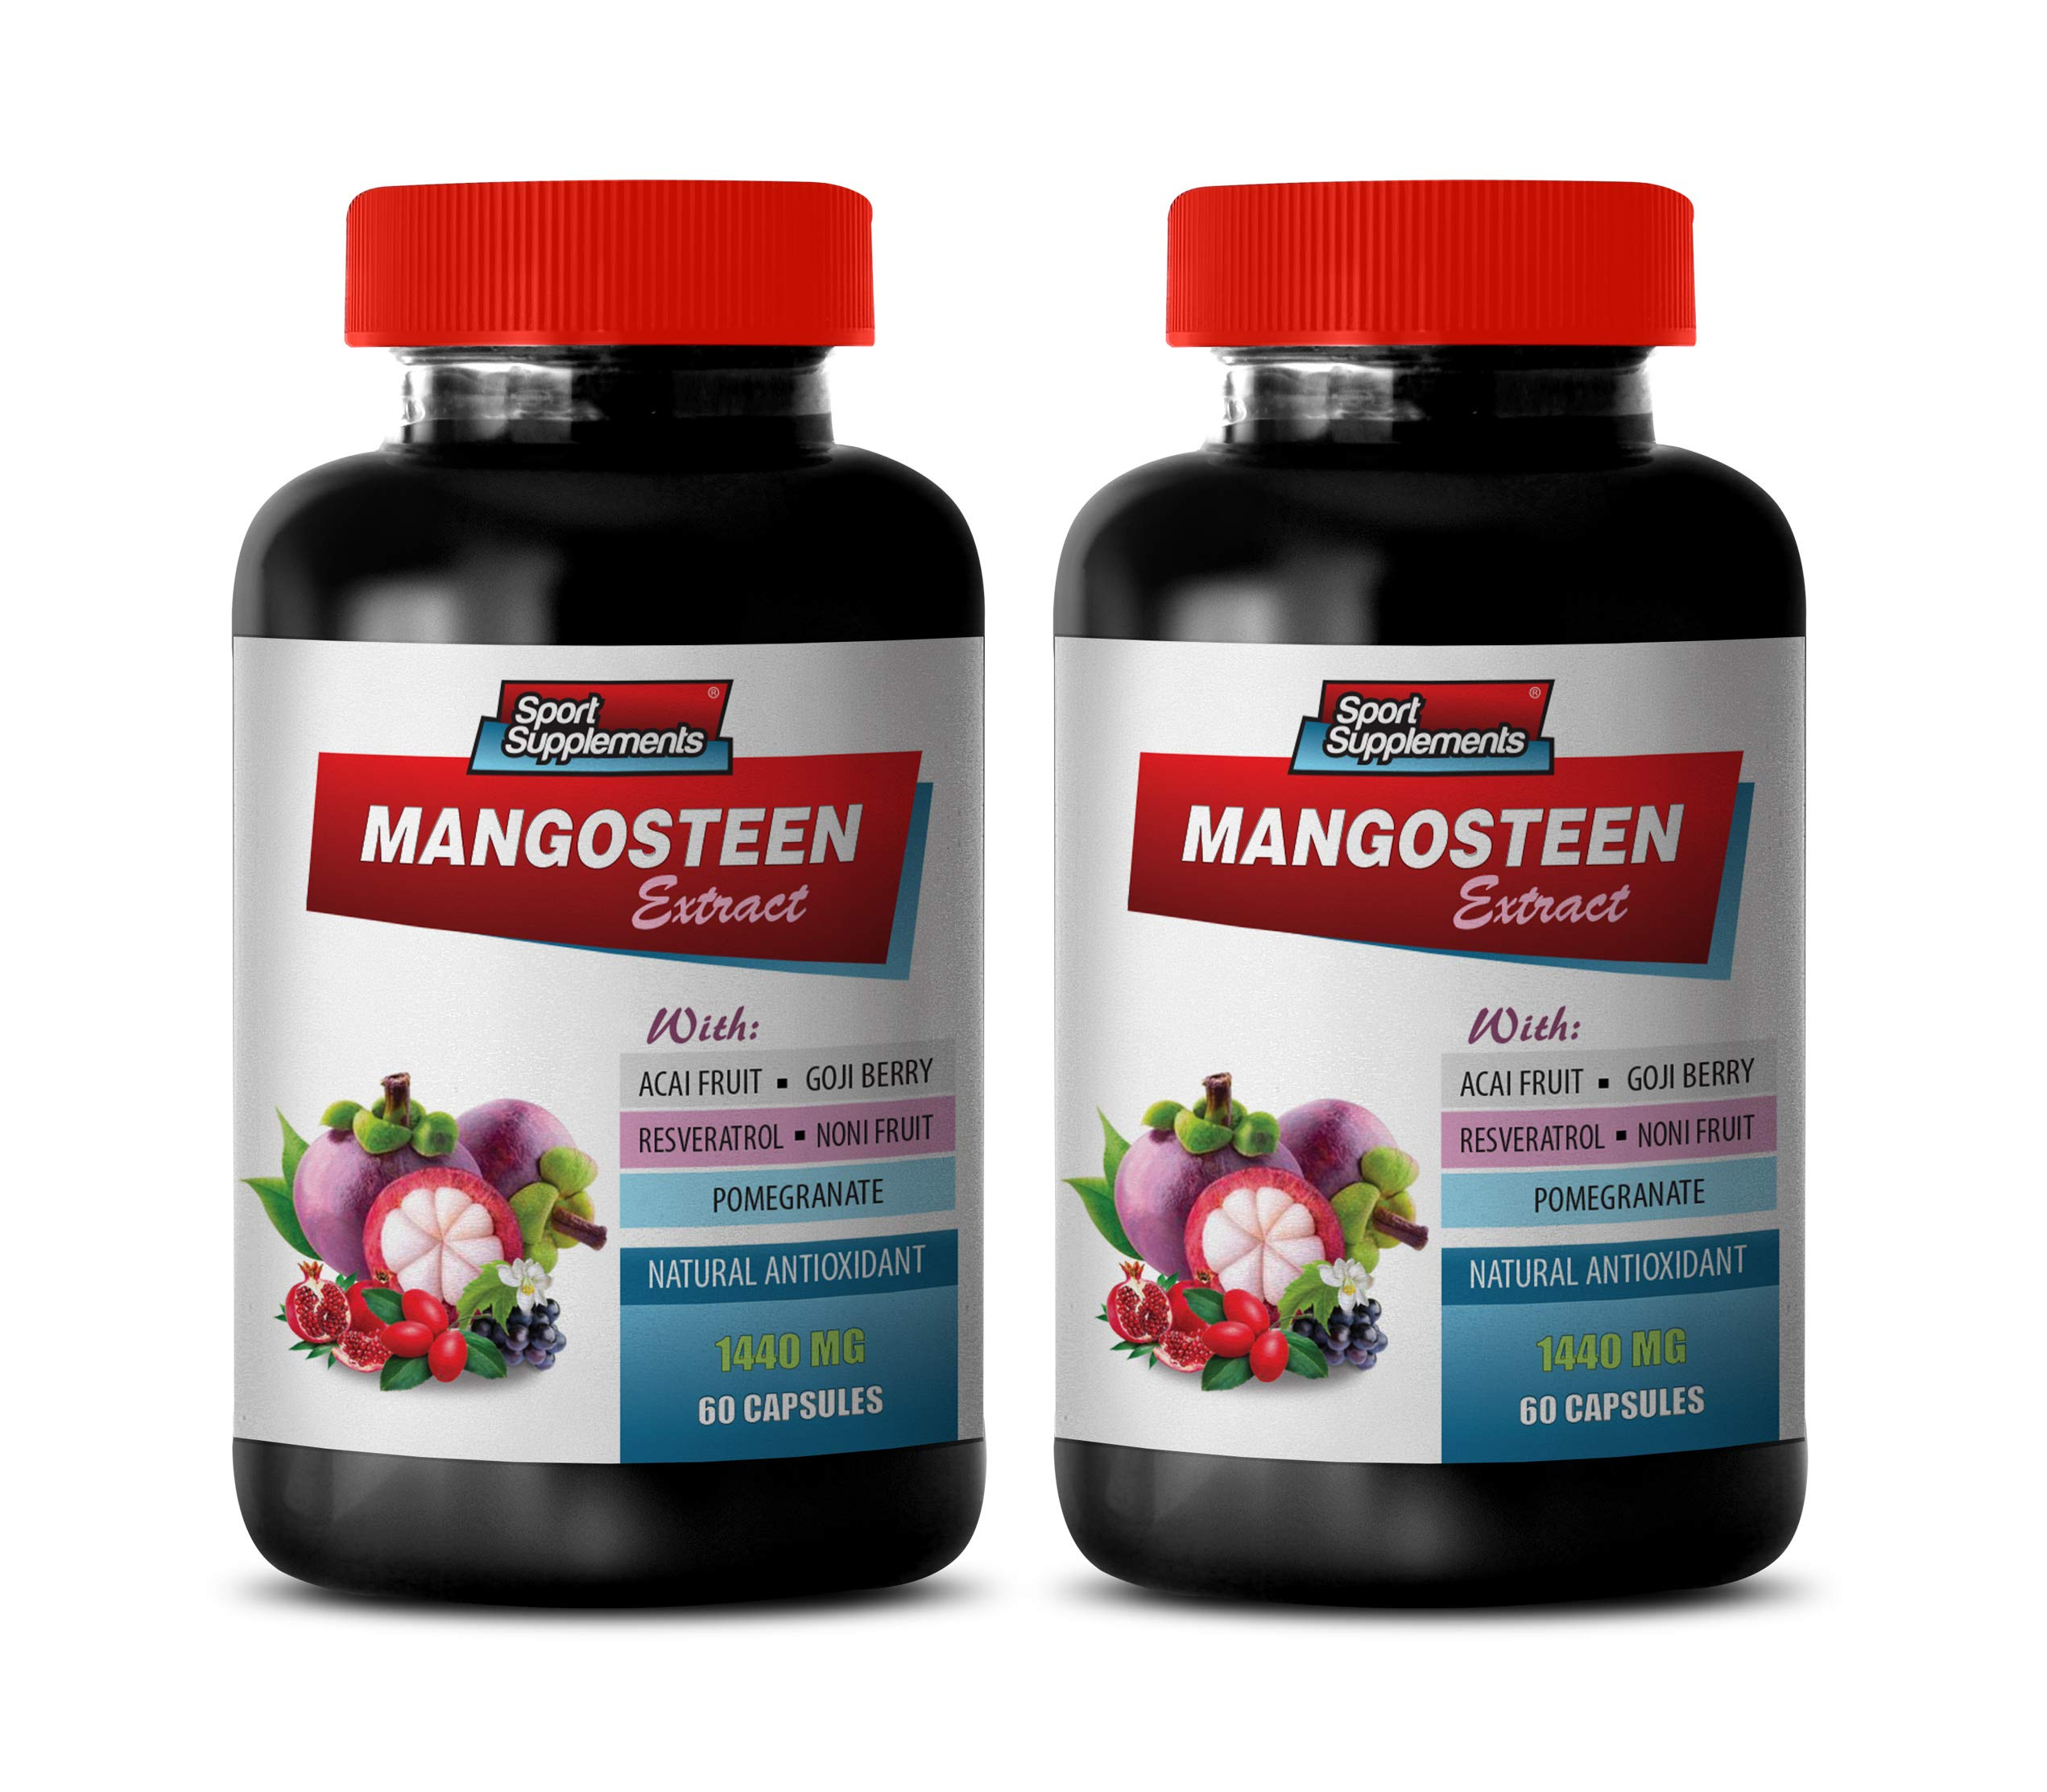 Brain and Memory Power Boost - Mangosteen Extract Complex 1440MG - Natural ANTIOXIDANT - Mangosteen Pills - 2 Bottles 120 Capsules